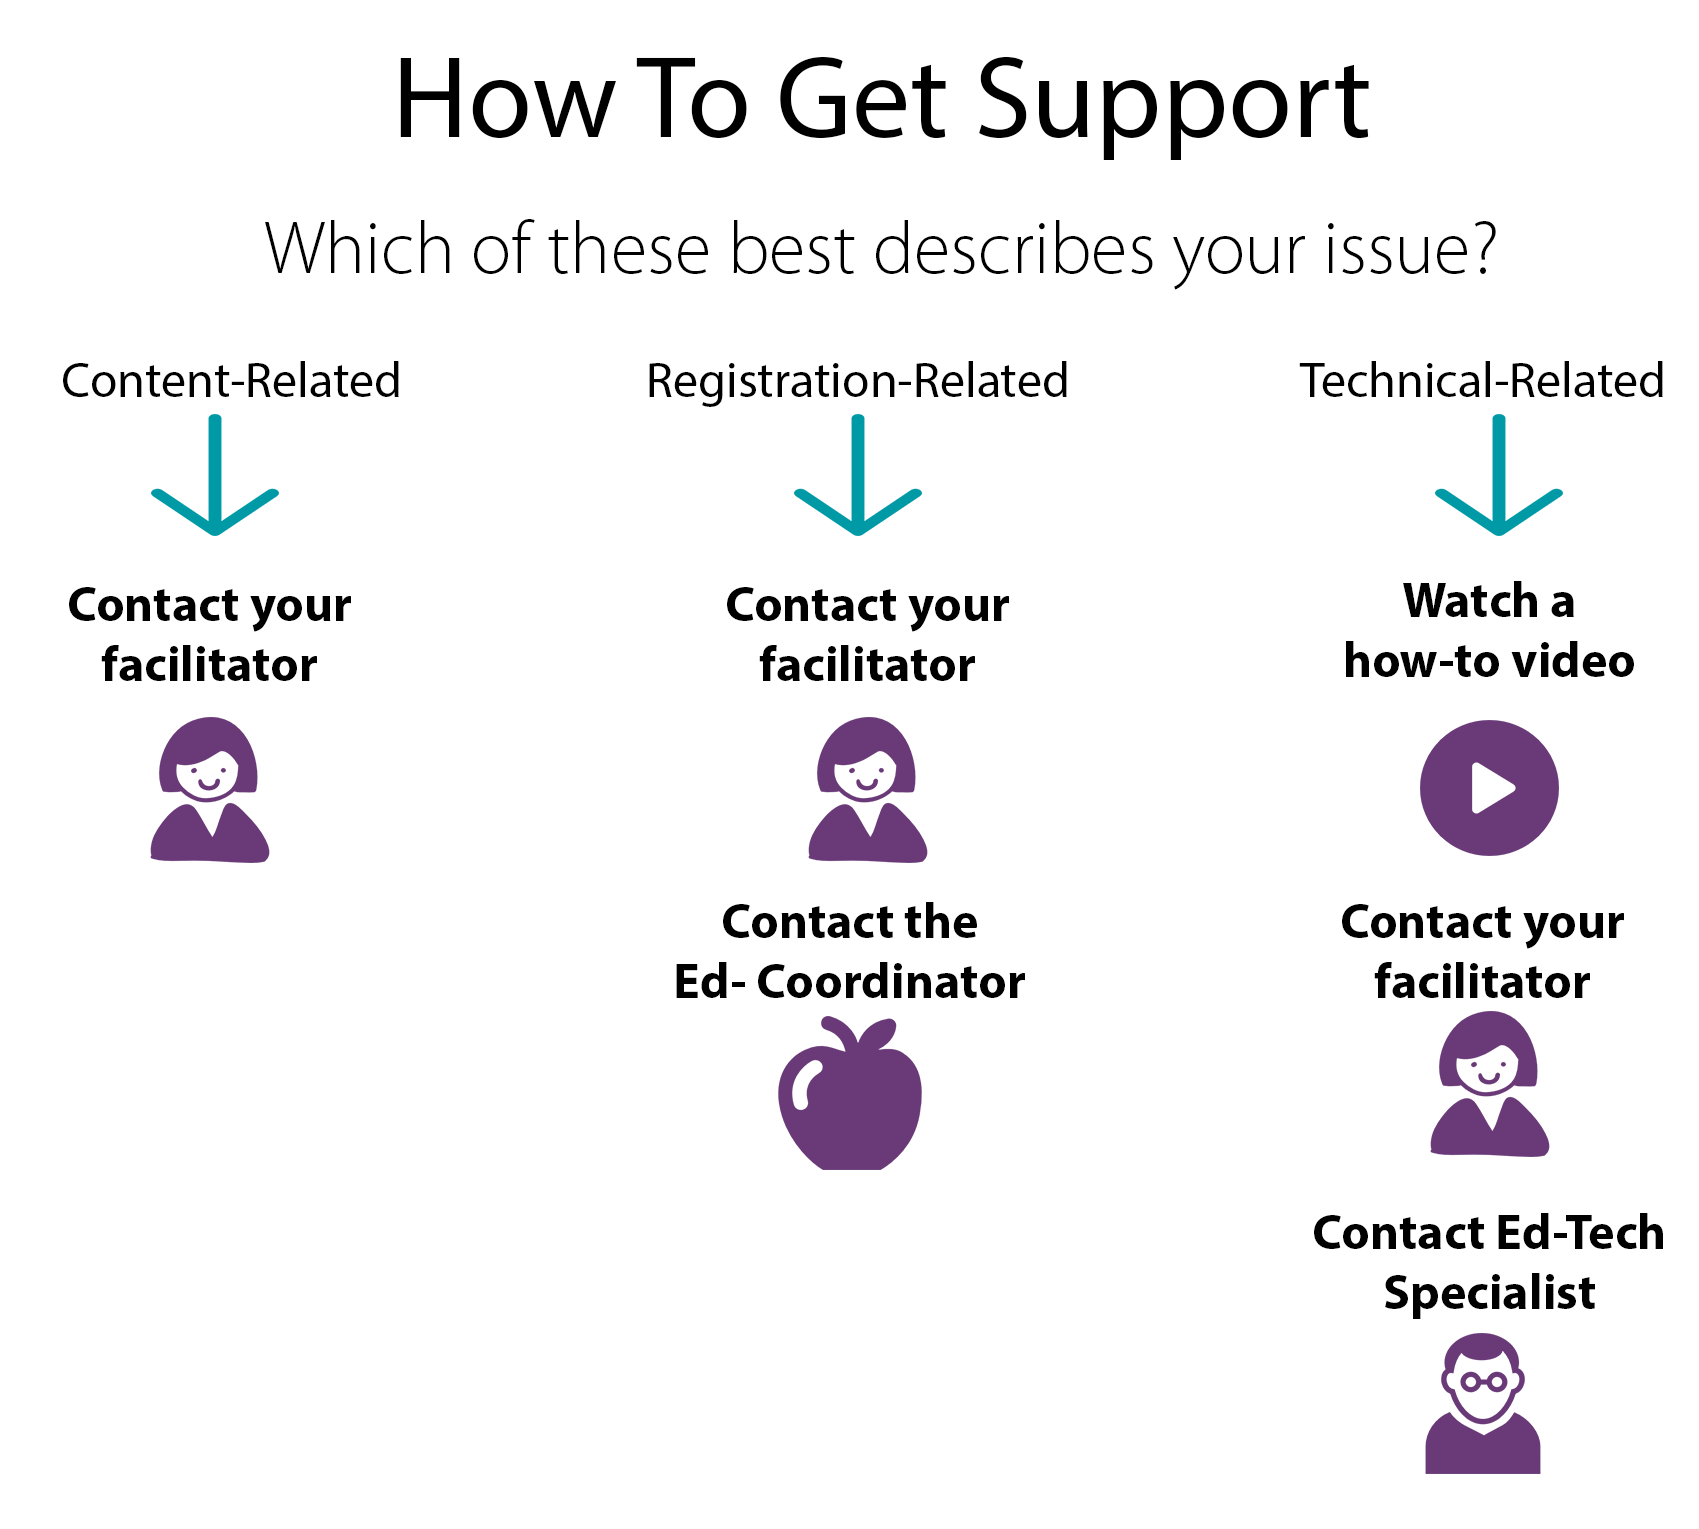 How to Get Support